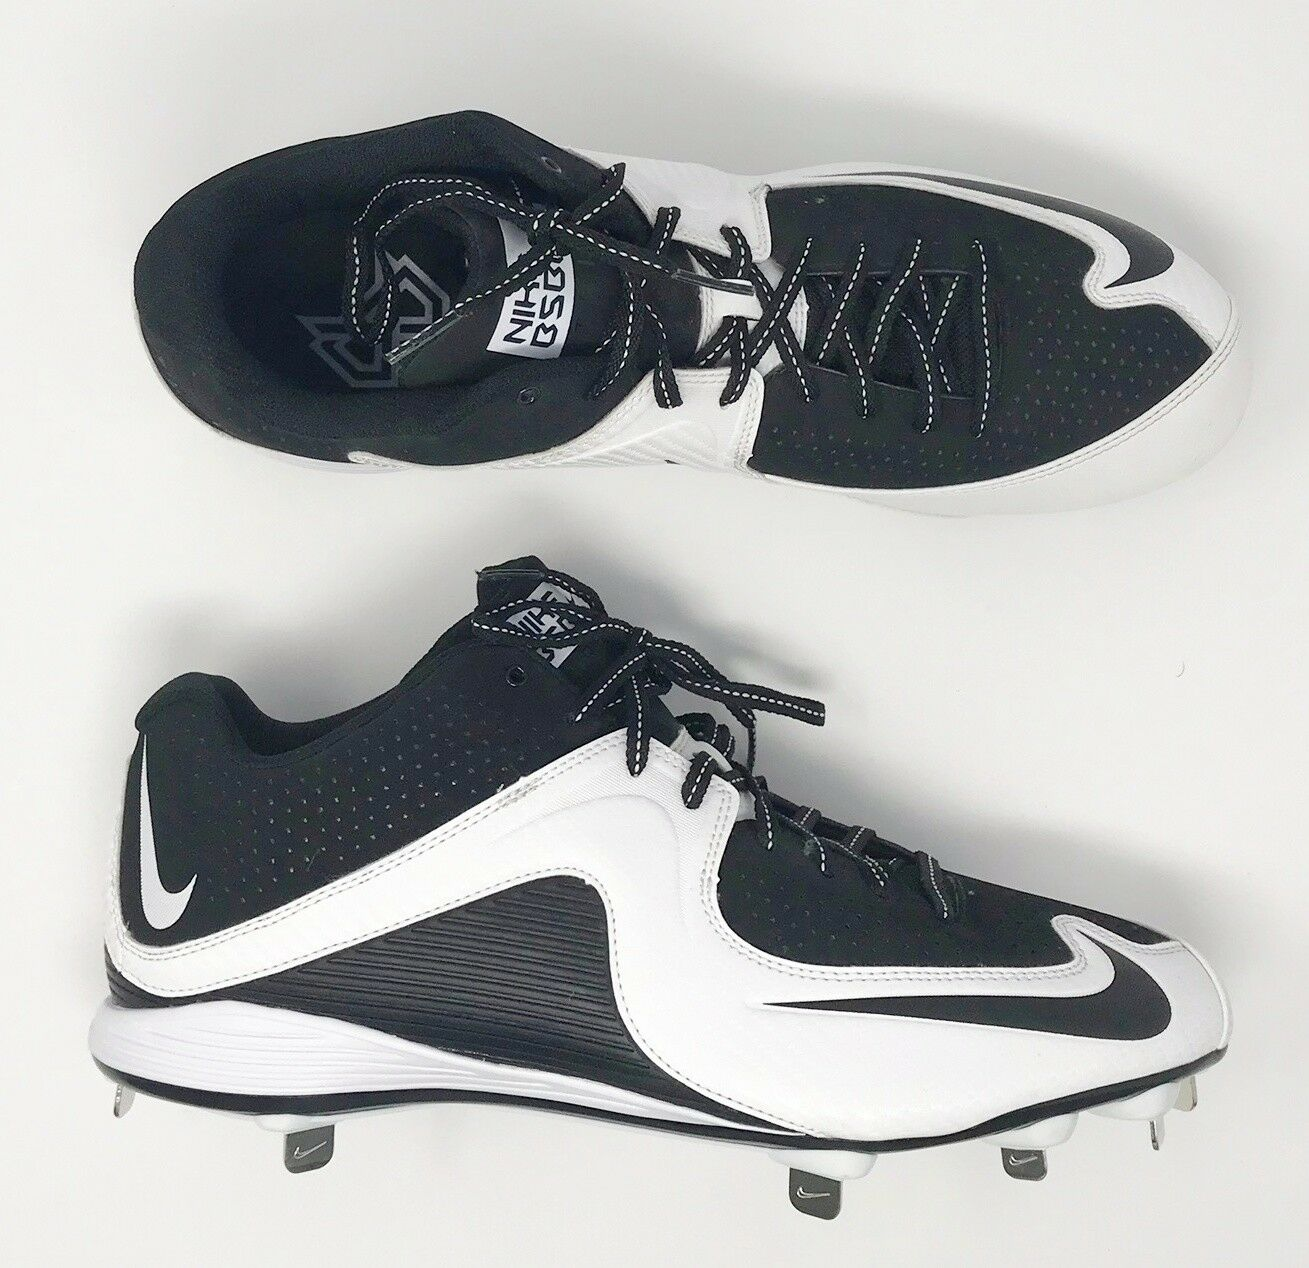 Nike BSBL Strike MVP Men's US Size 14 Baseball/Softball Black Cleats Shoes #S1